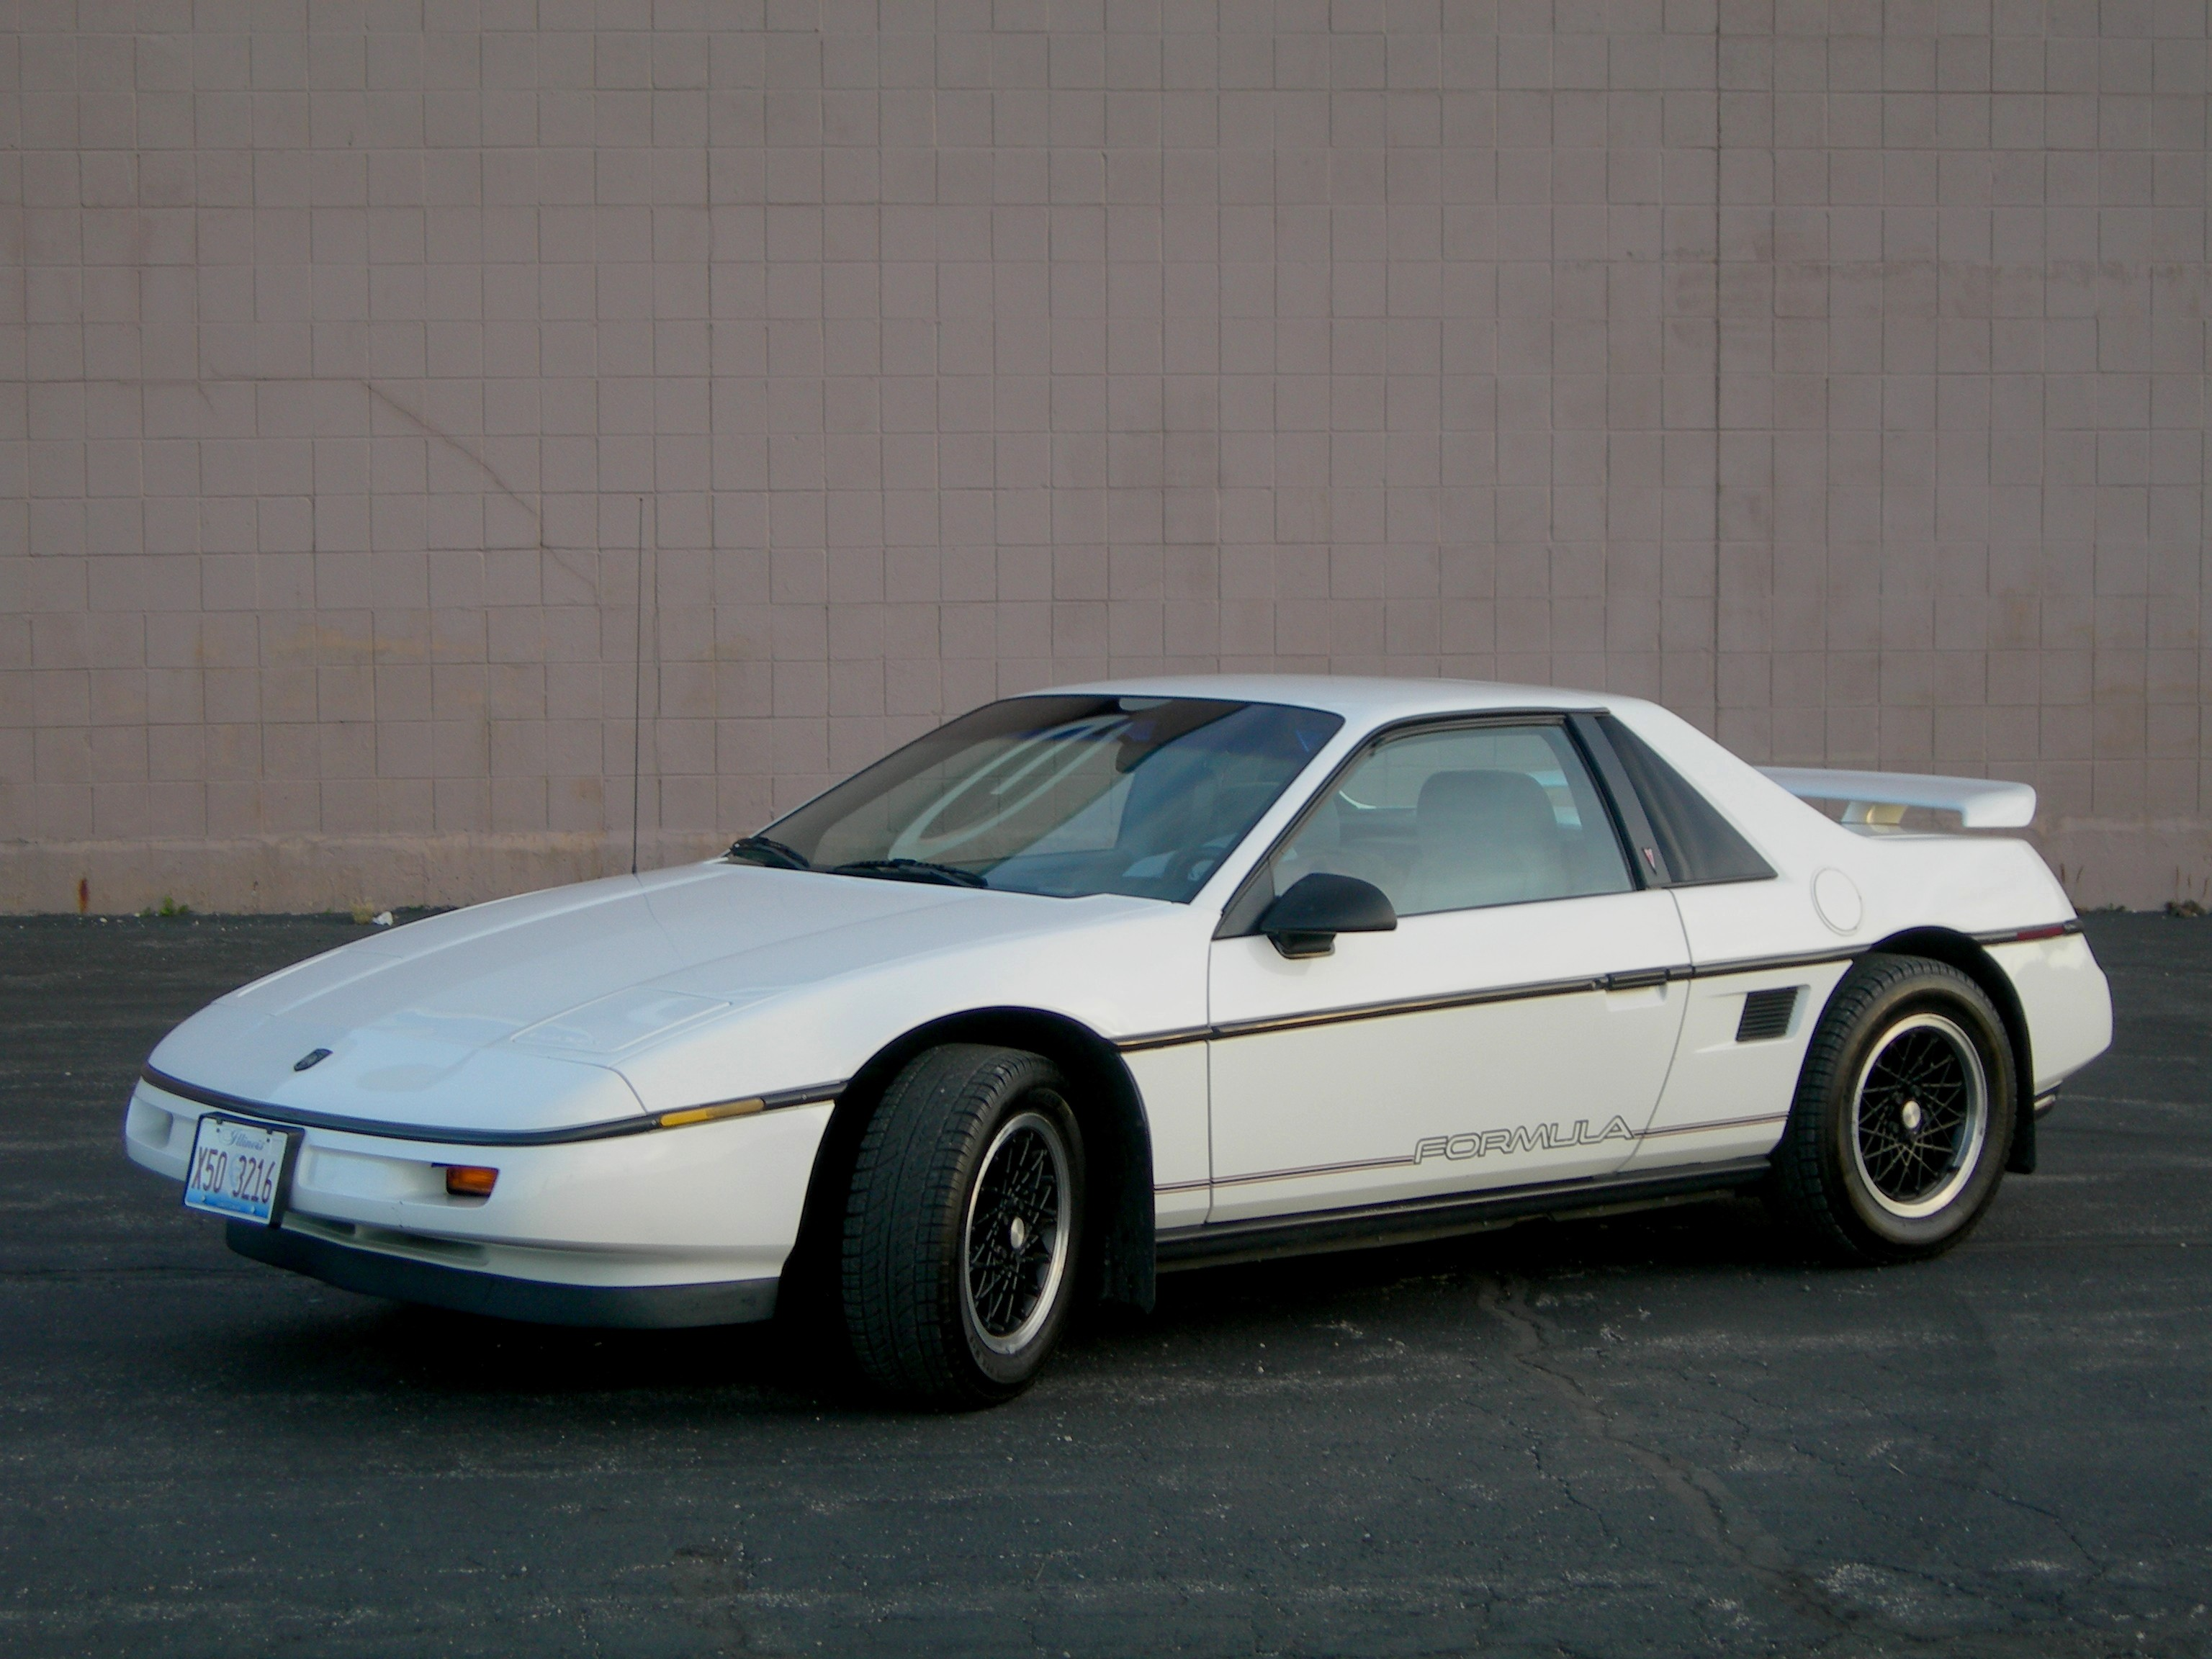 Derailed Design The 10 Reasons Why Pontiac Failed Fiero Drawings 9 Solstice Fiero88